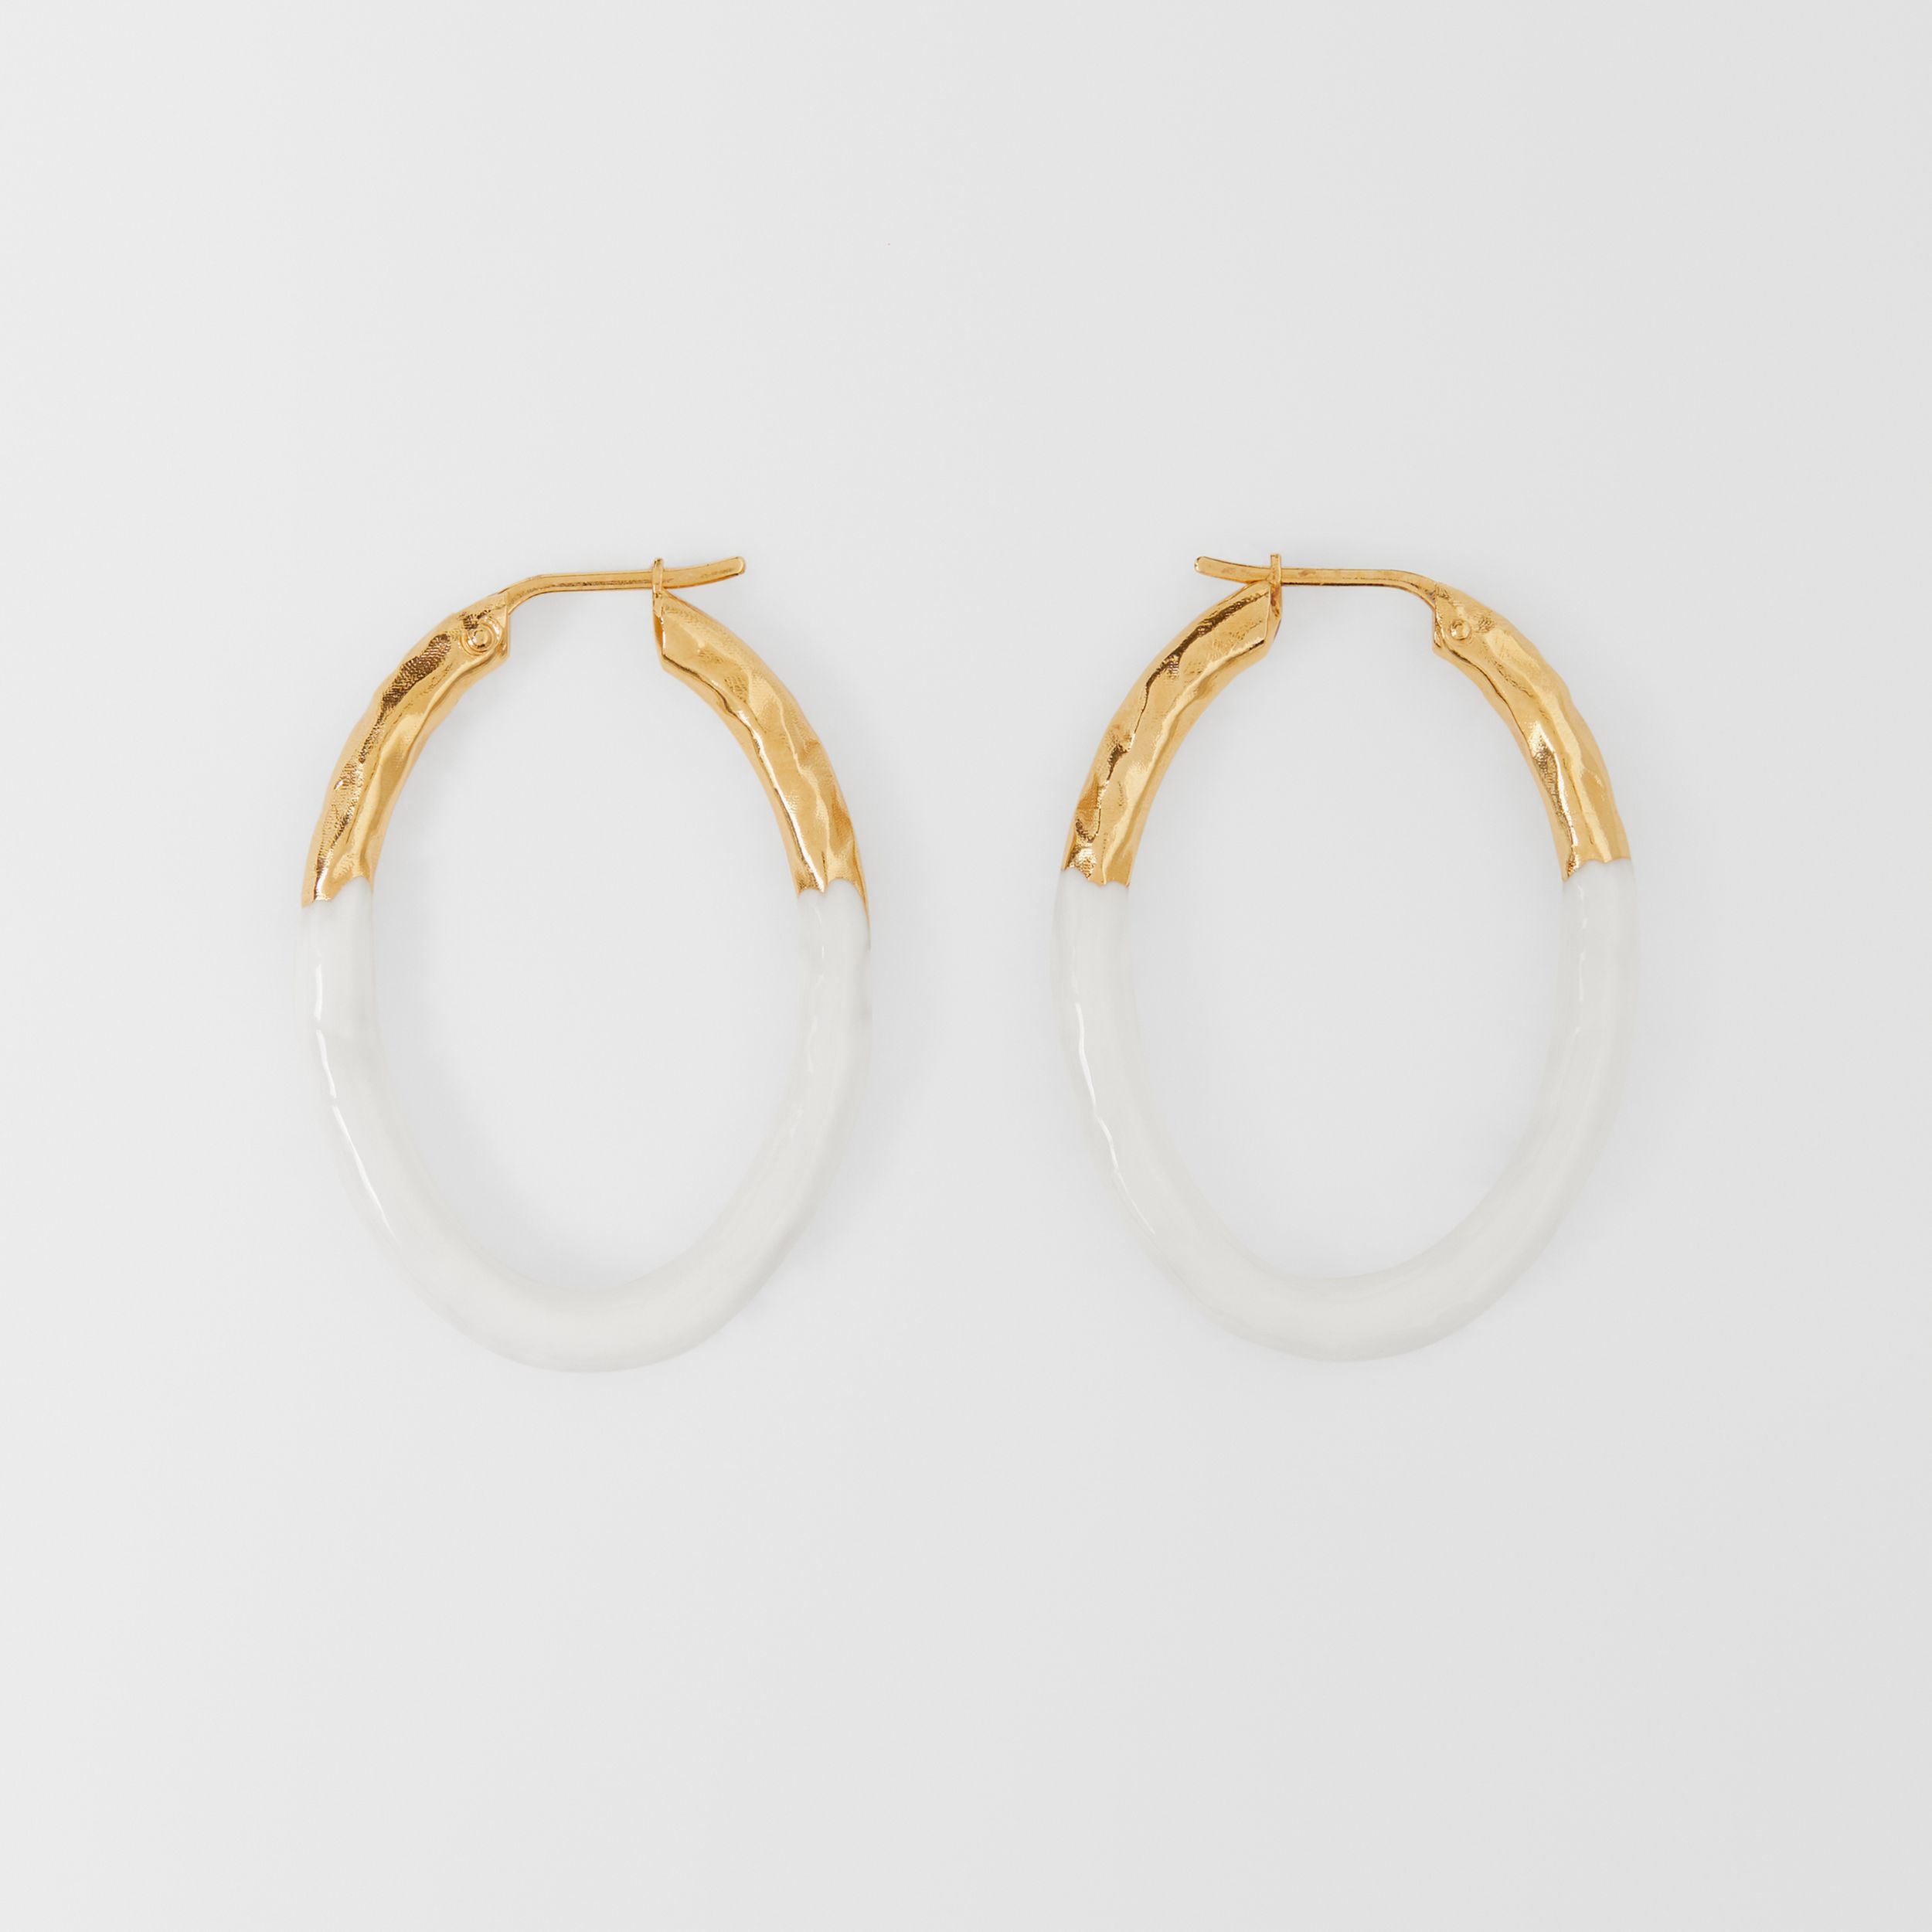 Enamel and Gold-plated Hoop Earrings in Light Gold/white - Women | Burberry United States - 1